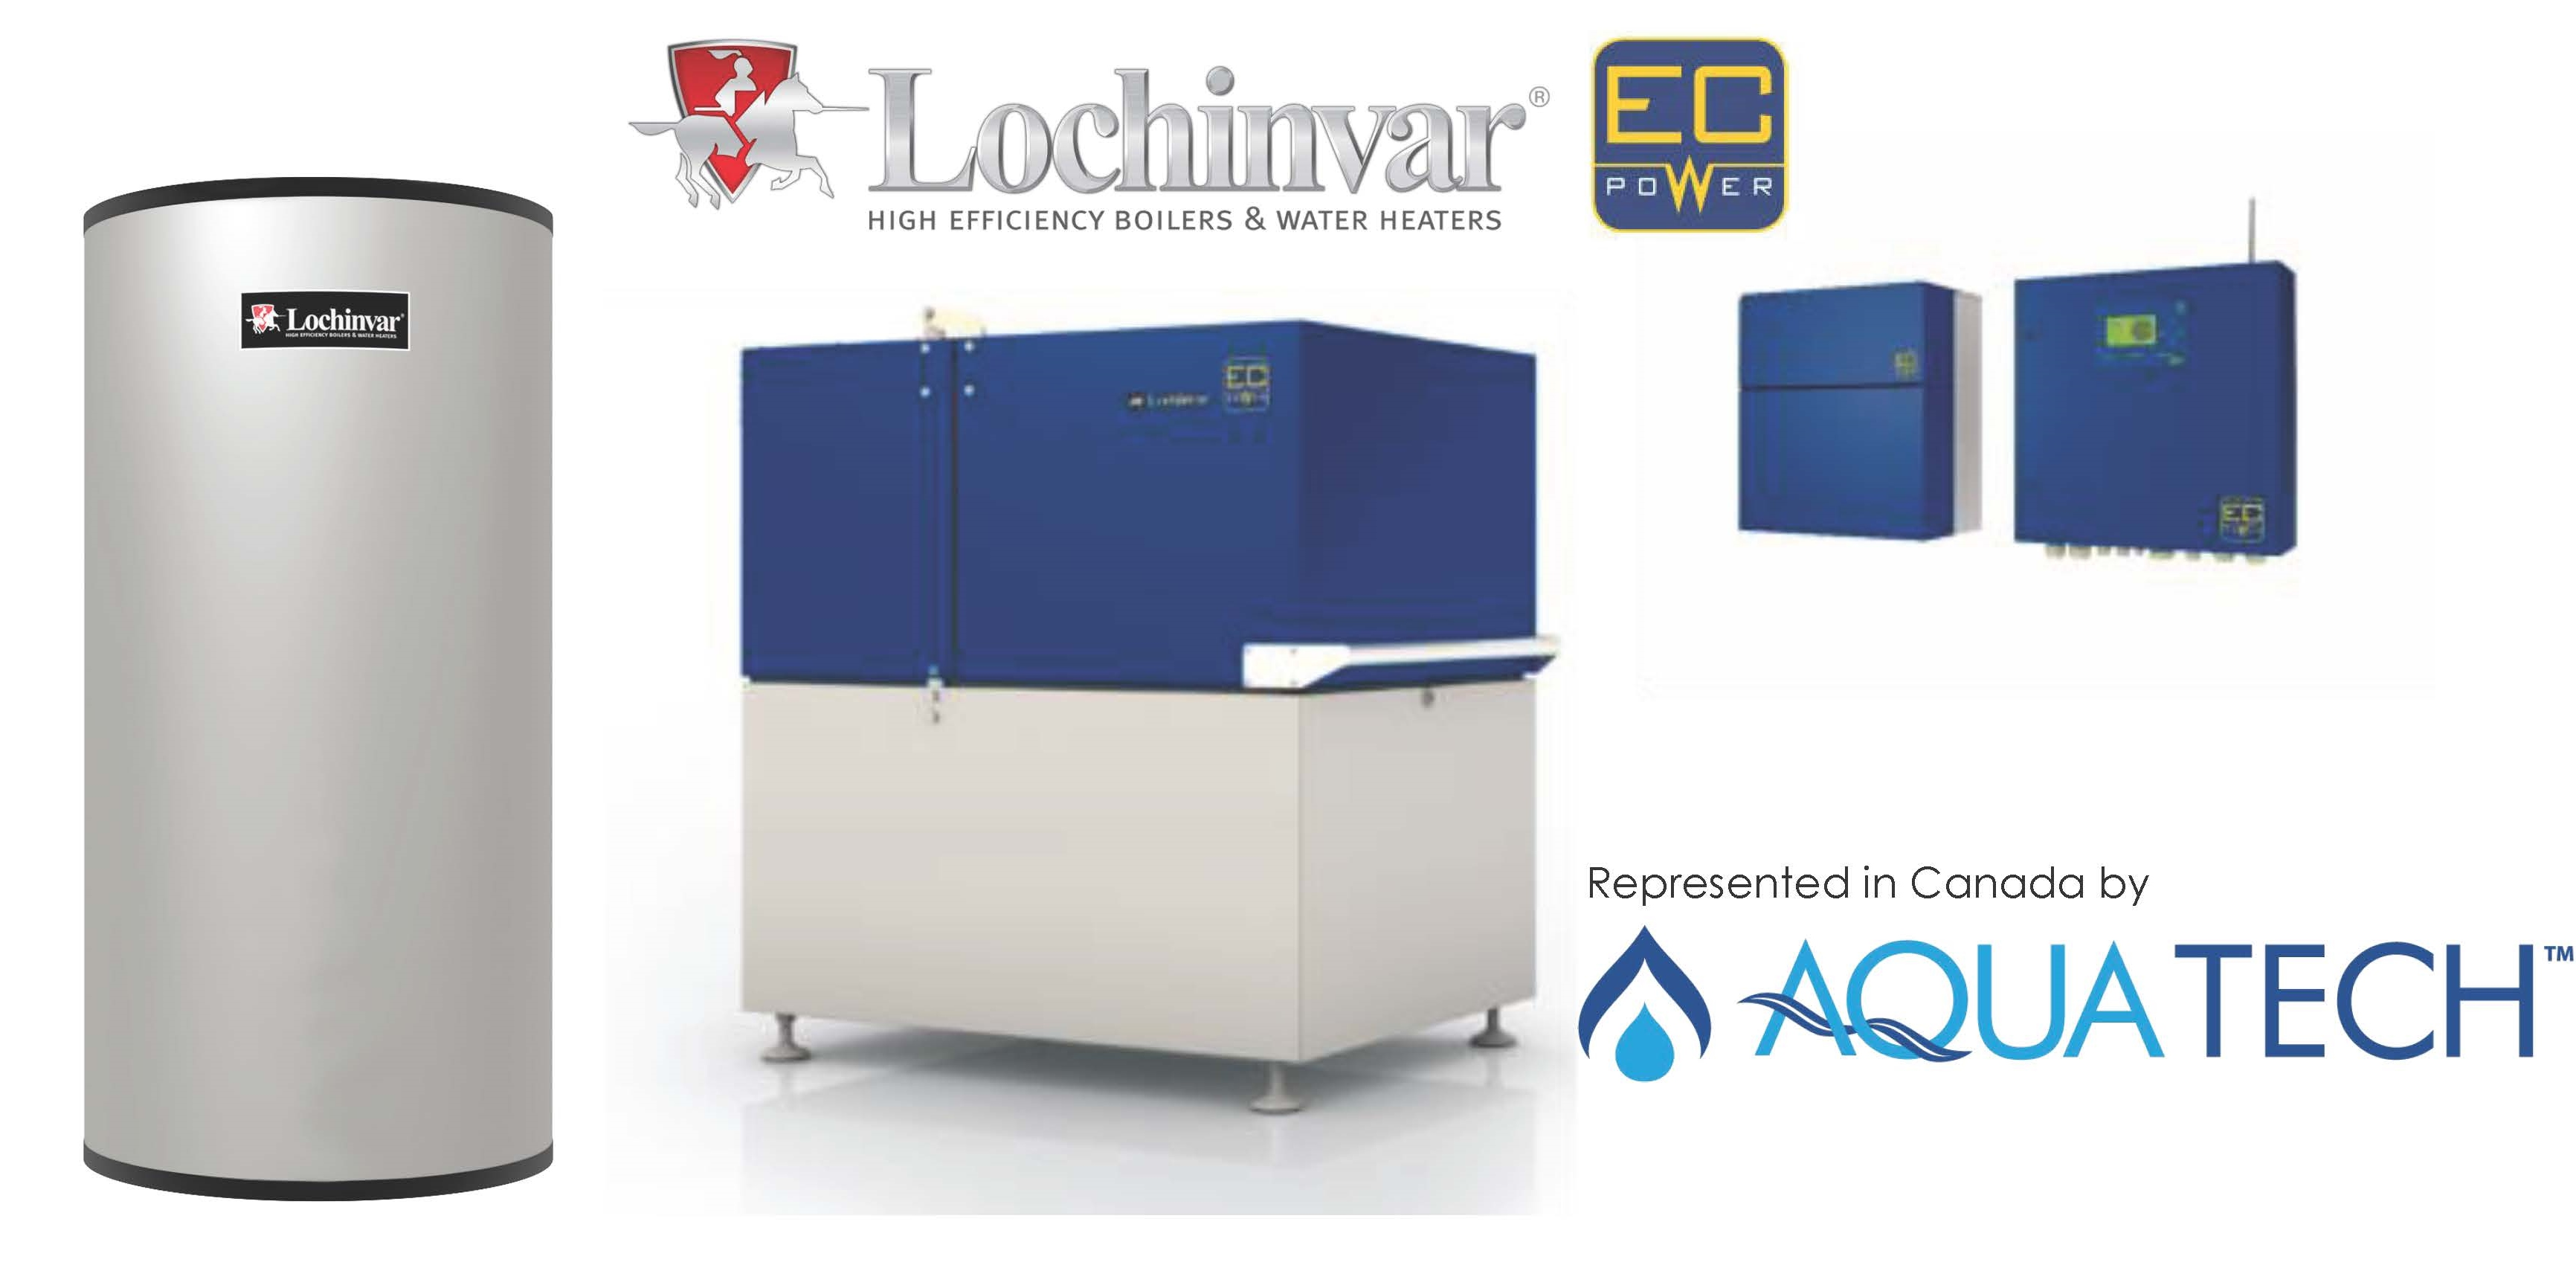 Lochinvar launching a cogeneration product in North America